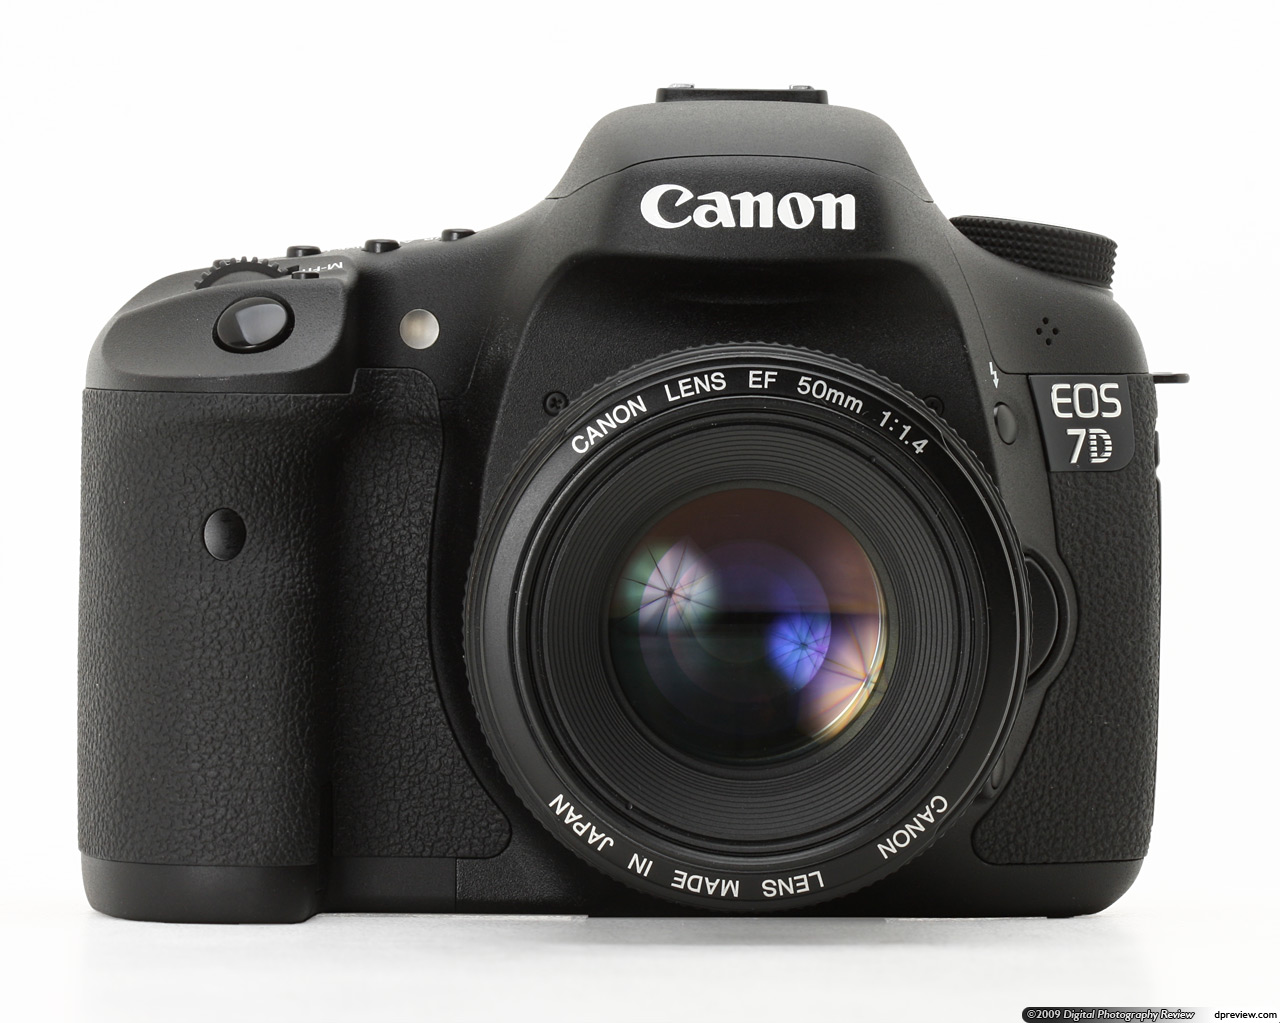 canon eos 7d review digital photography review rh dpreview com canon 7d user guide canon 7d user manual pdf